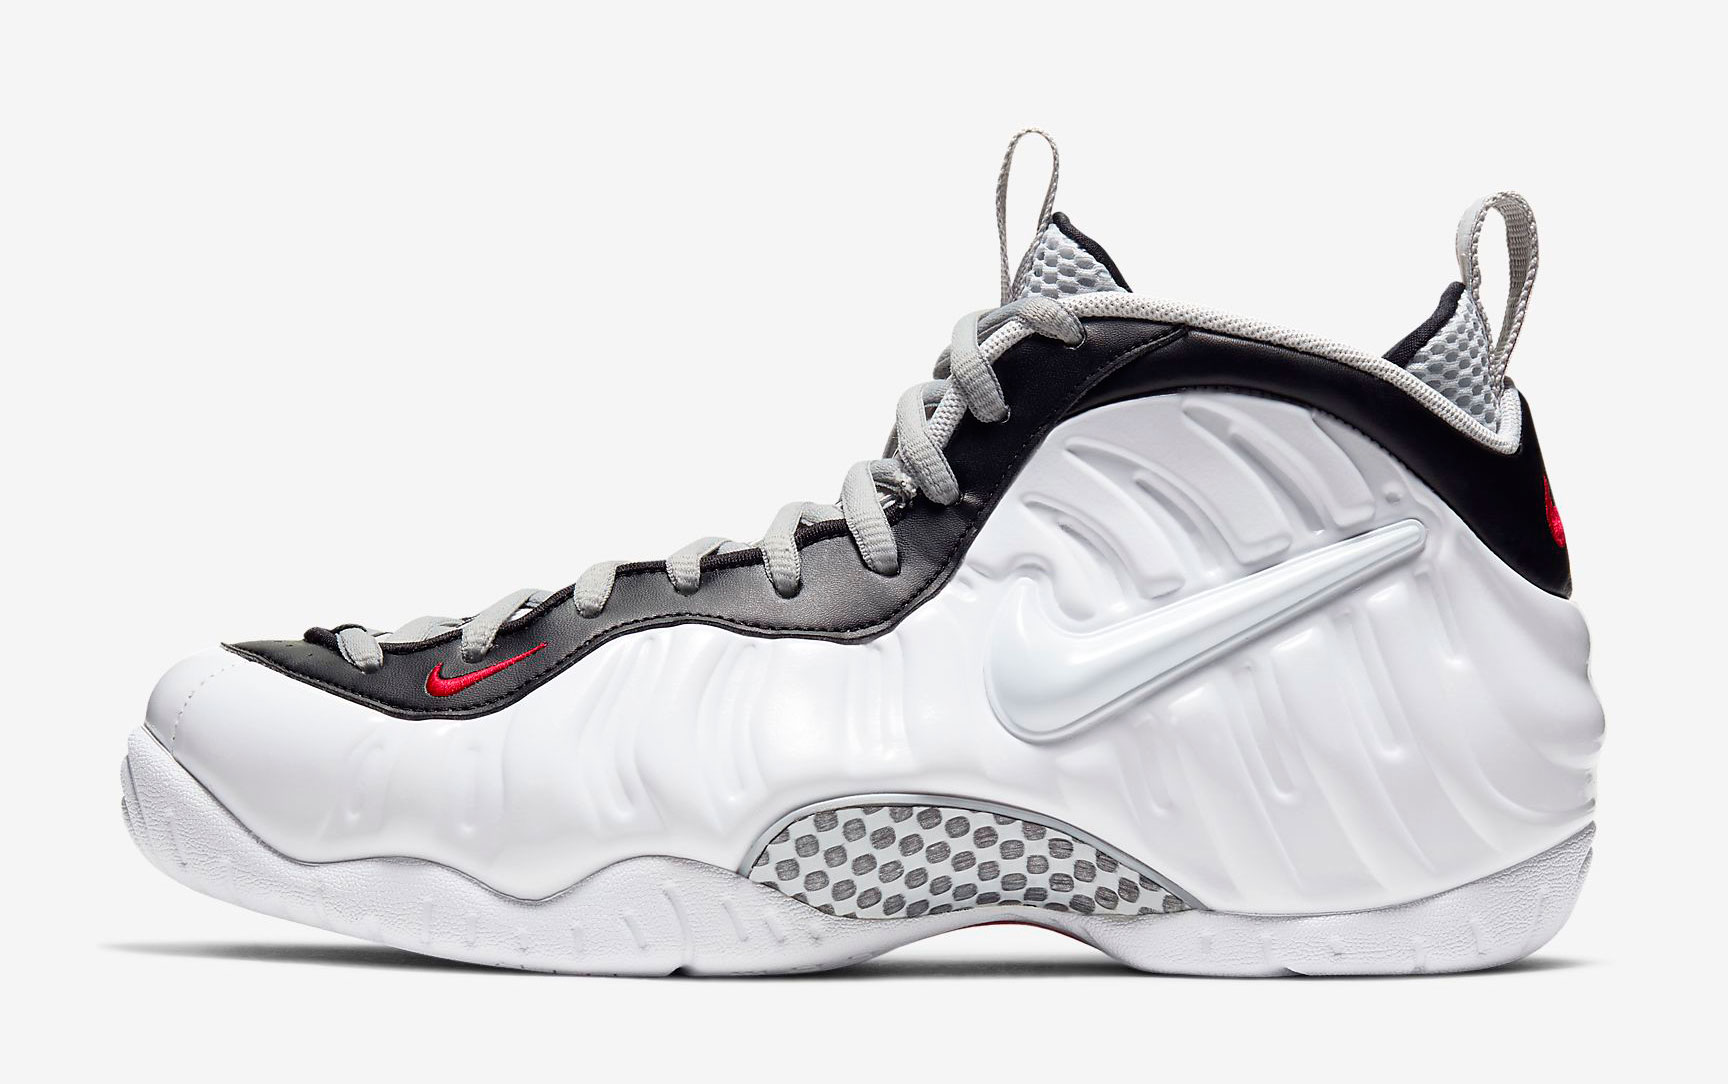 nike-air-foamposite-pro-white-black-red-release-date